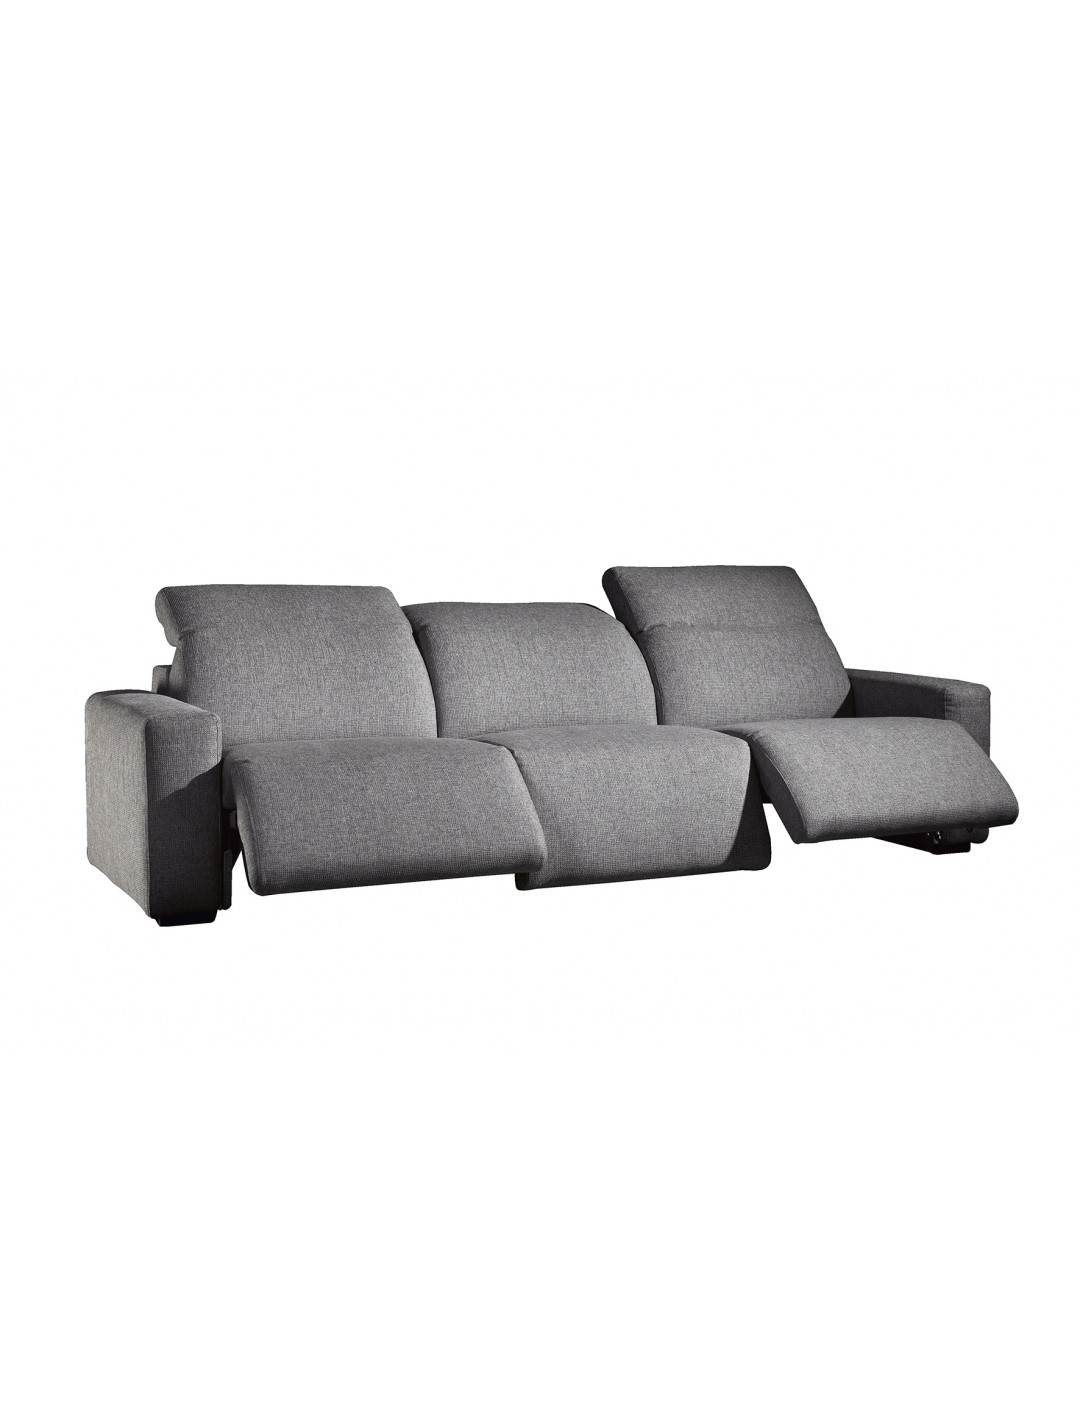 COSMOPOL 2 ARMS 3-SEATER SOFA, RELAX MOTION DEVICE INCLUDED, C.O.M.